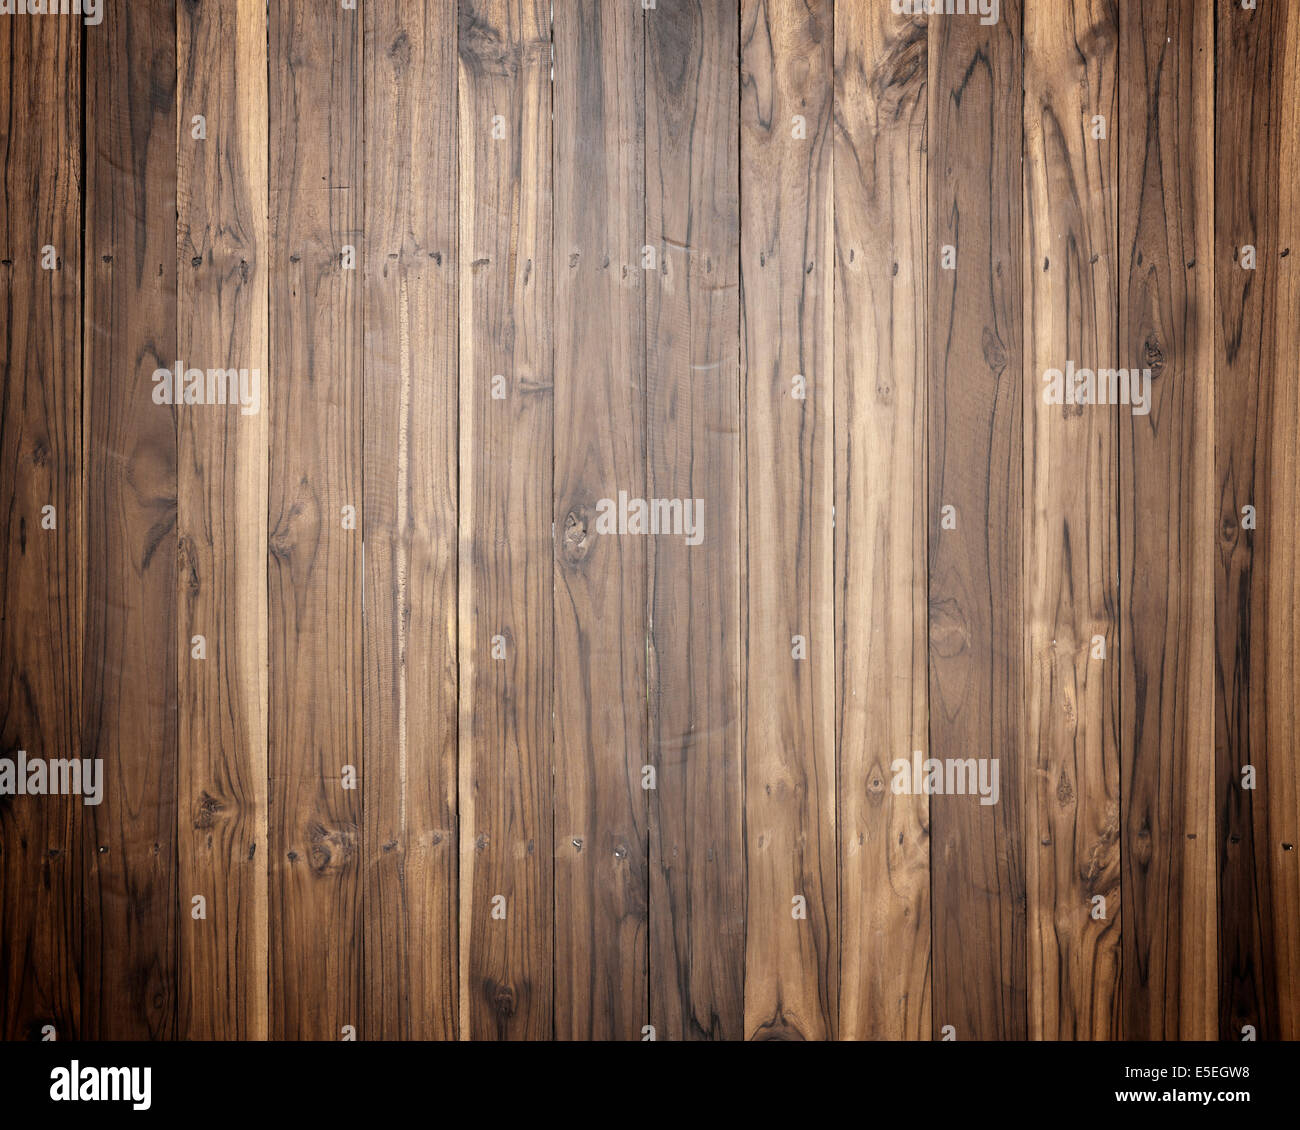 Old Wood plank brown texture background intensity. - Stock Image